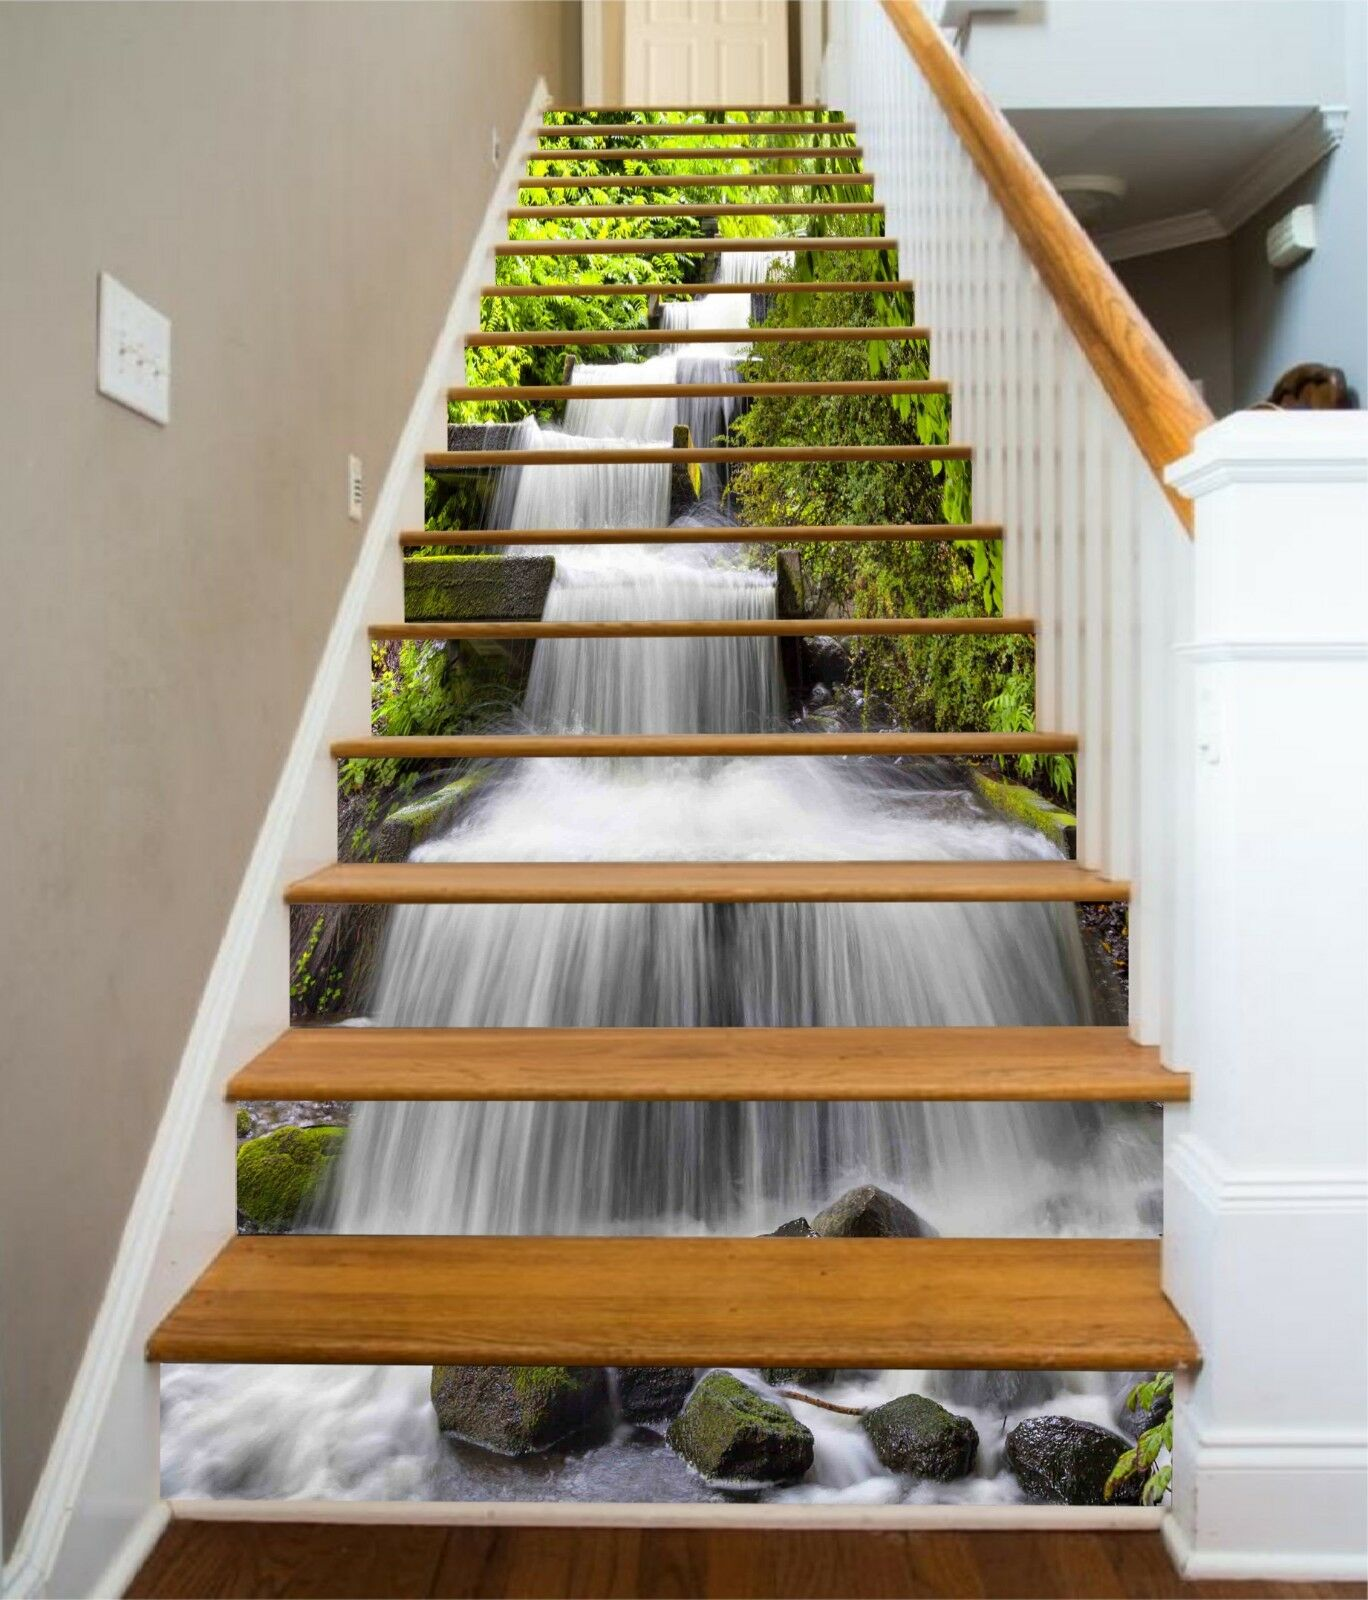 3D Stream Leaves 9 Stair Risers Decoration Photo Mural Vinyl Decal Wallpaper US